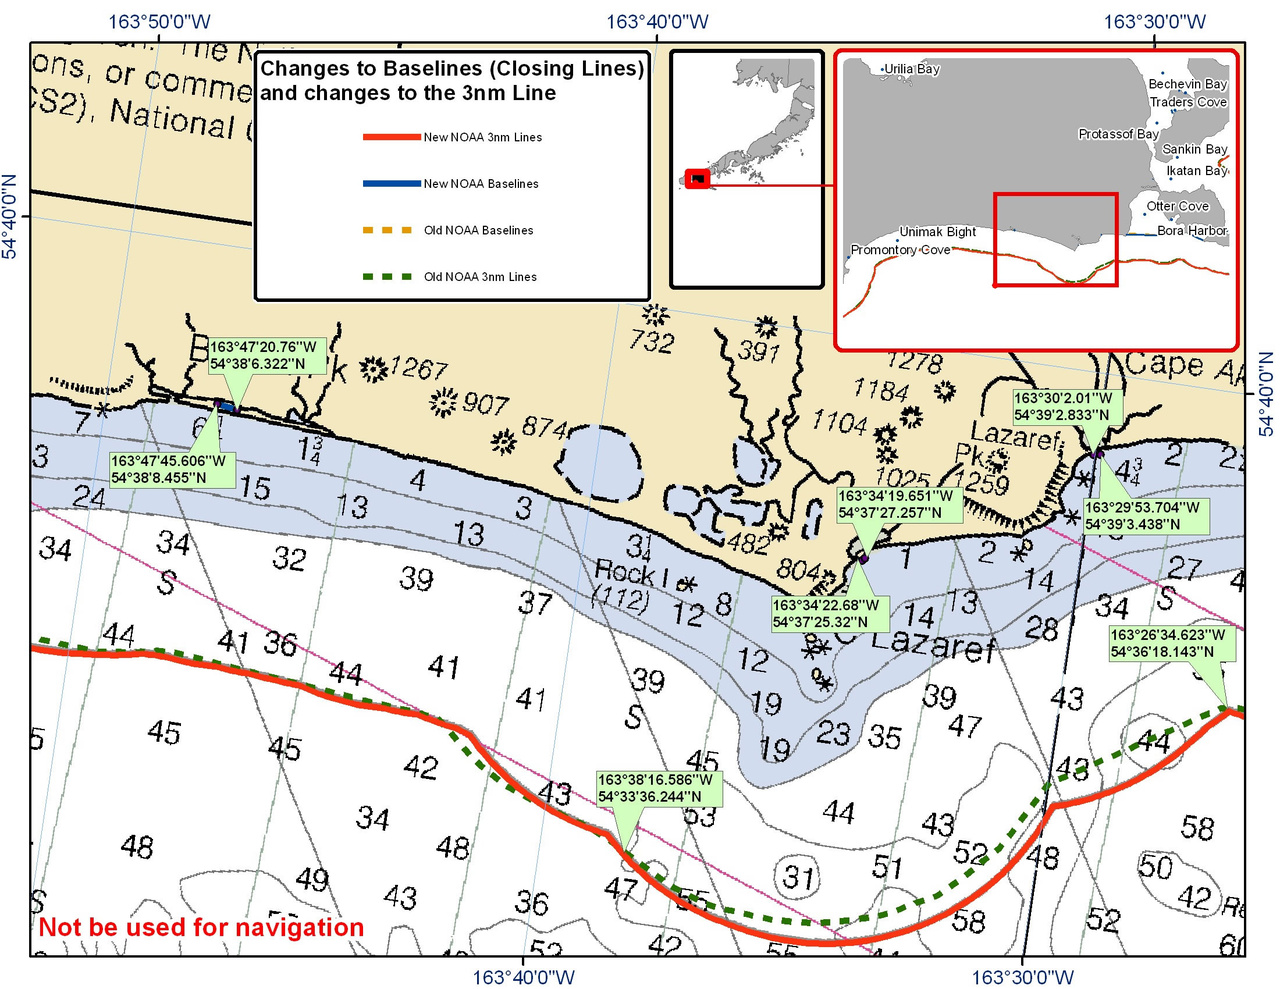 Chart for the Area between Otter Cove and Unimak Bight